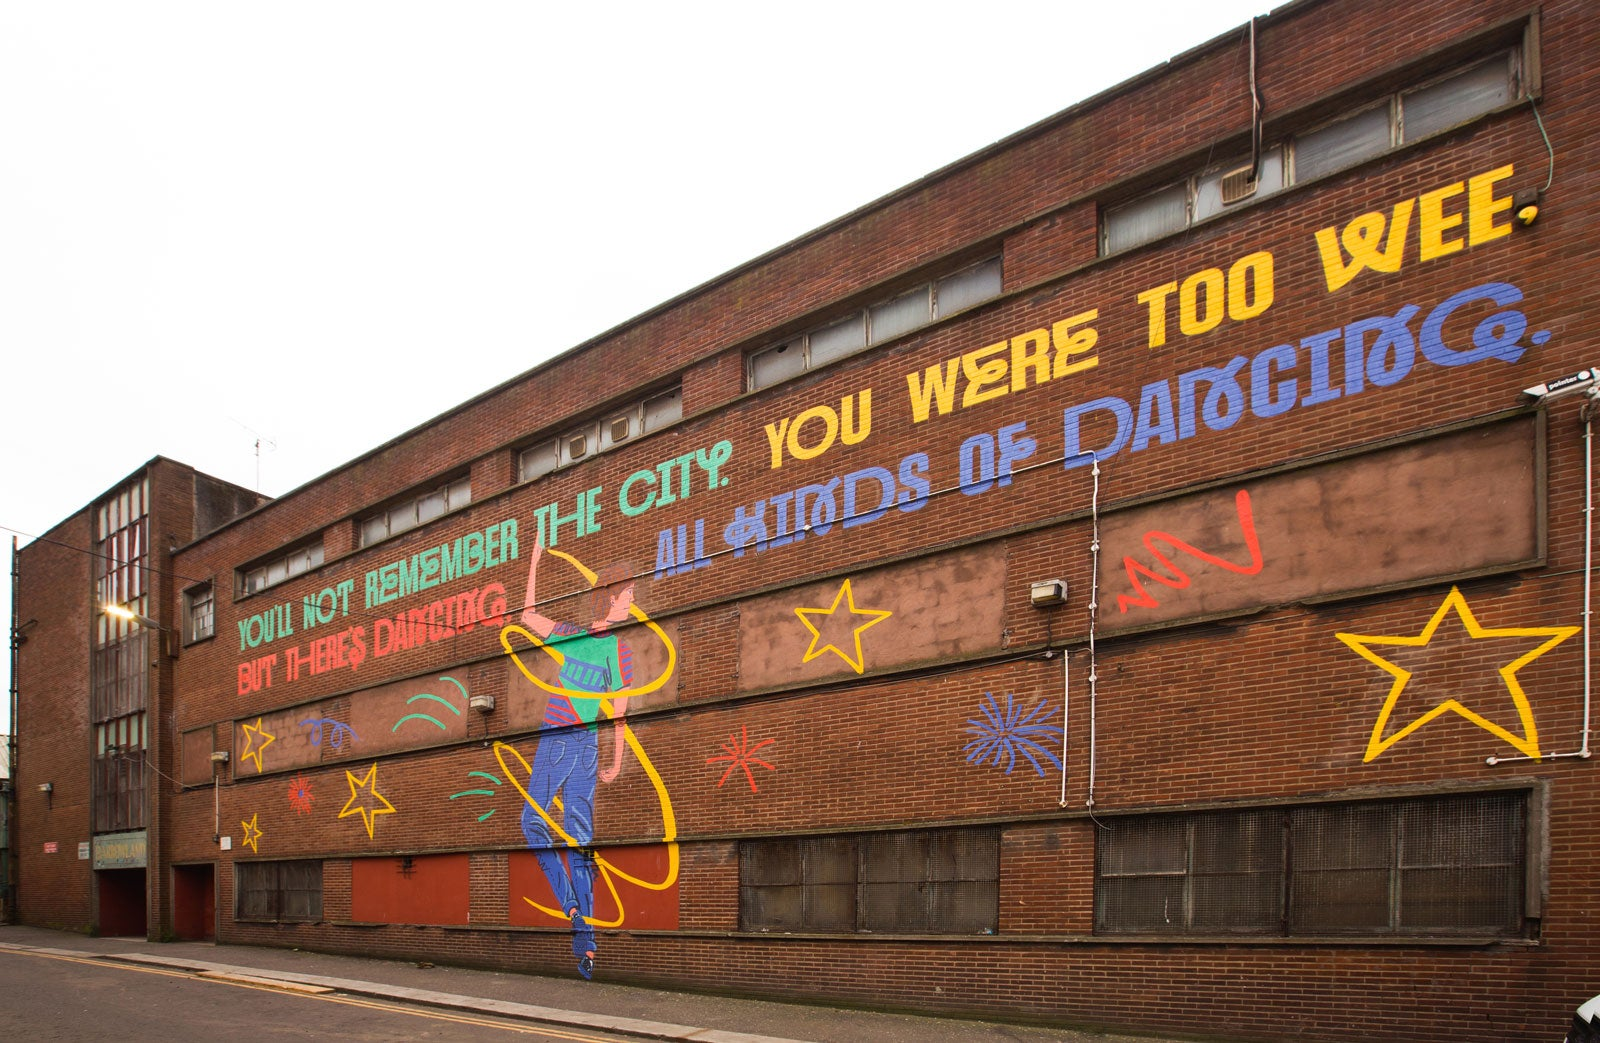 The side of Barrowland, an industrial looking red brick building, painted with a large 30m mural which shows a young boy spinning, surrounded by stars, and above it the words: 'You'll not remember the city. You were too wee. But there's dancing, all kinds of dancing'